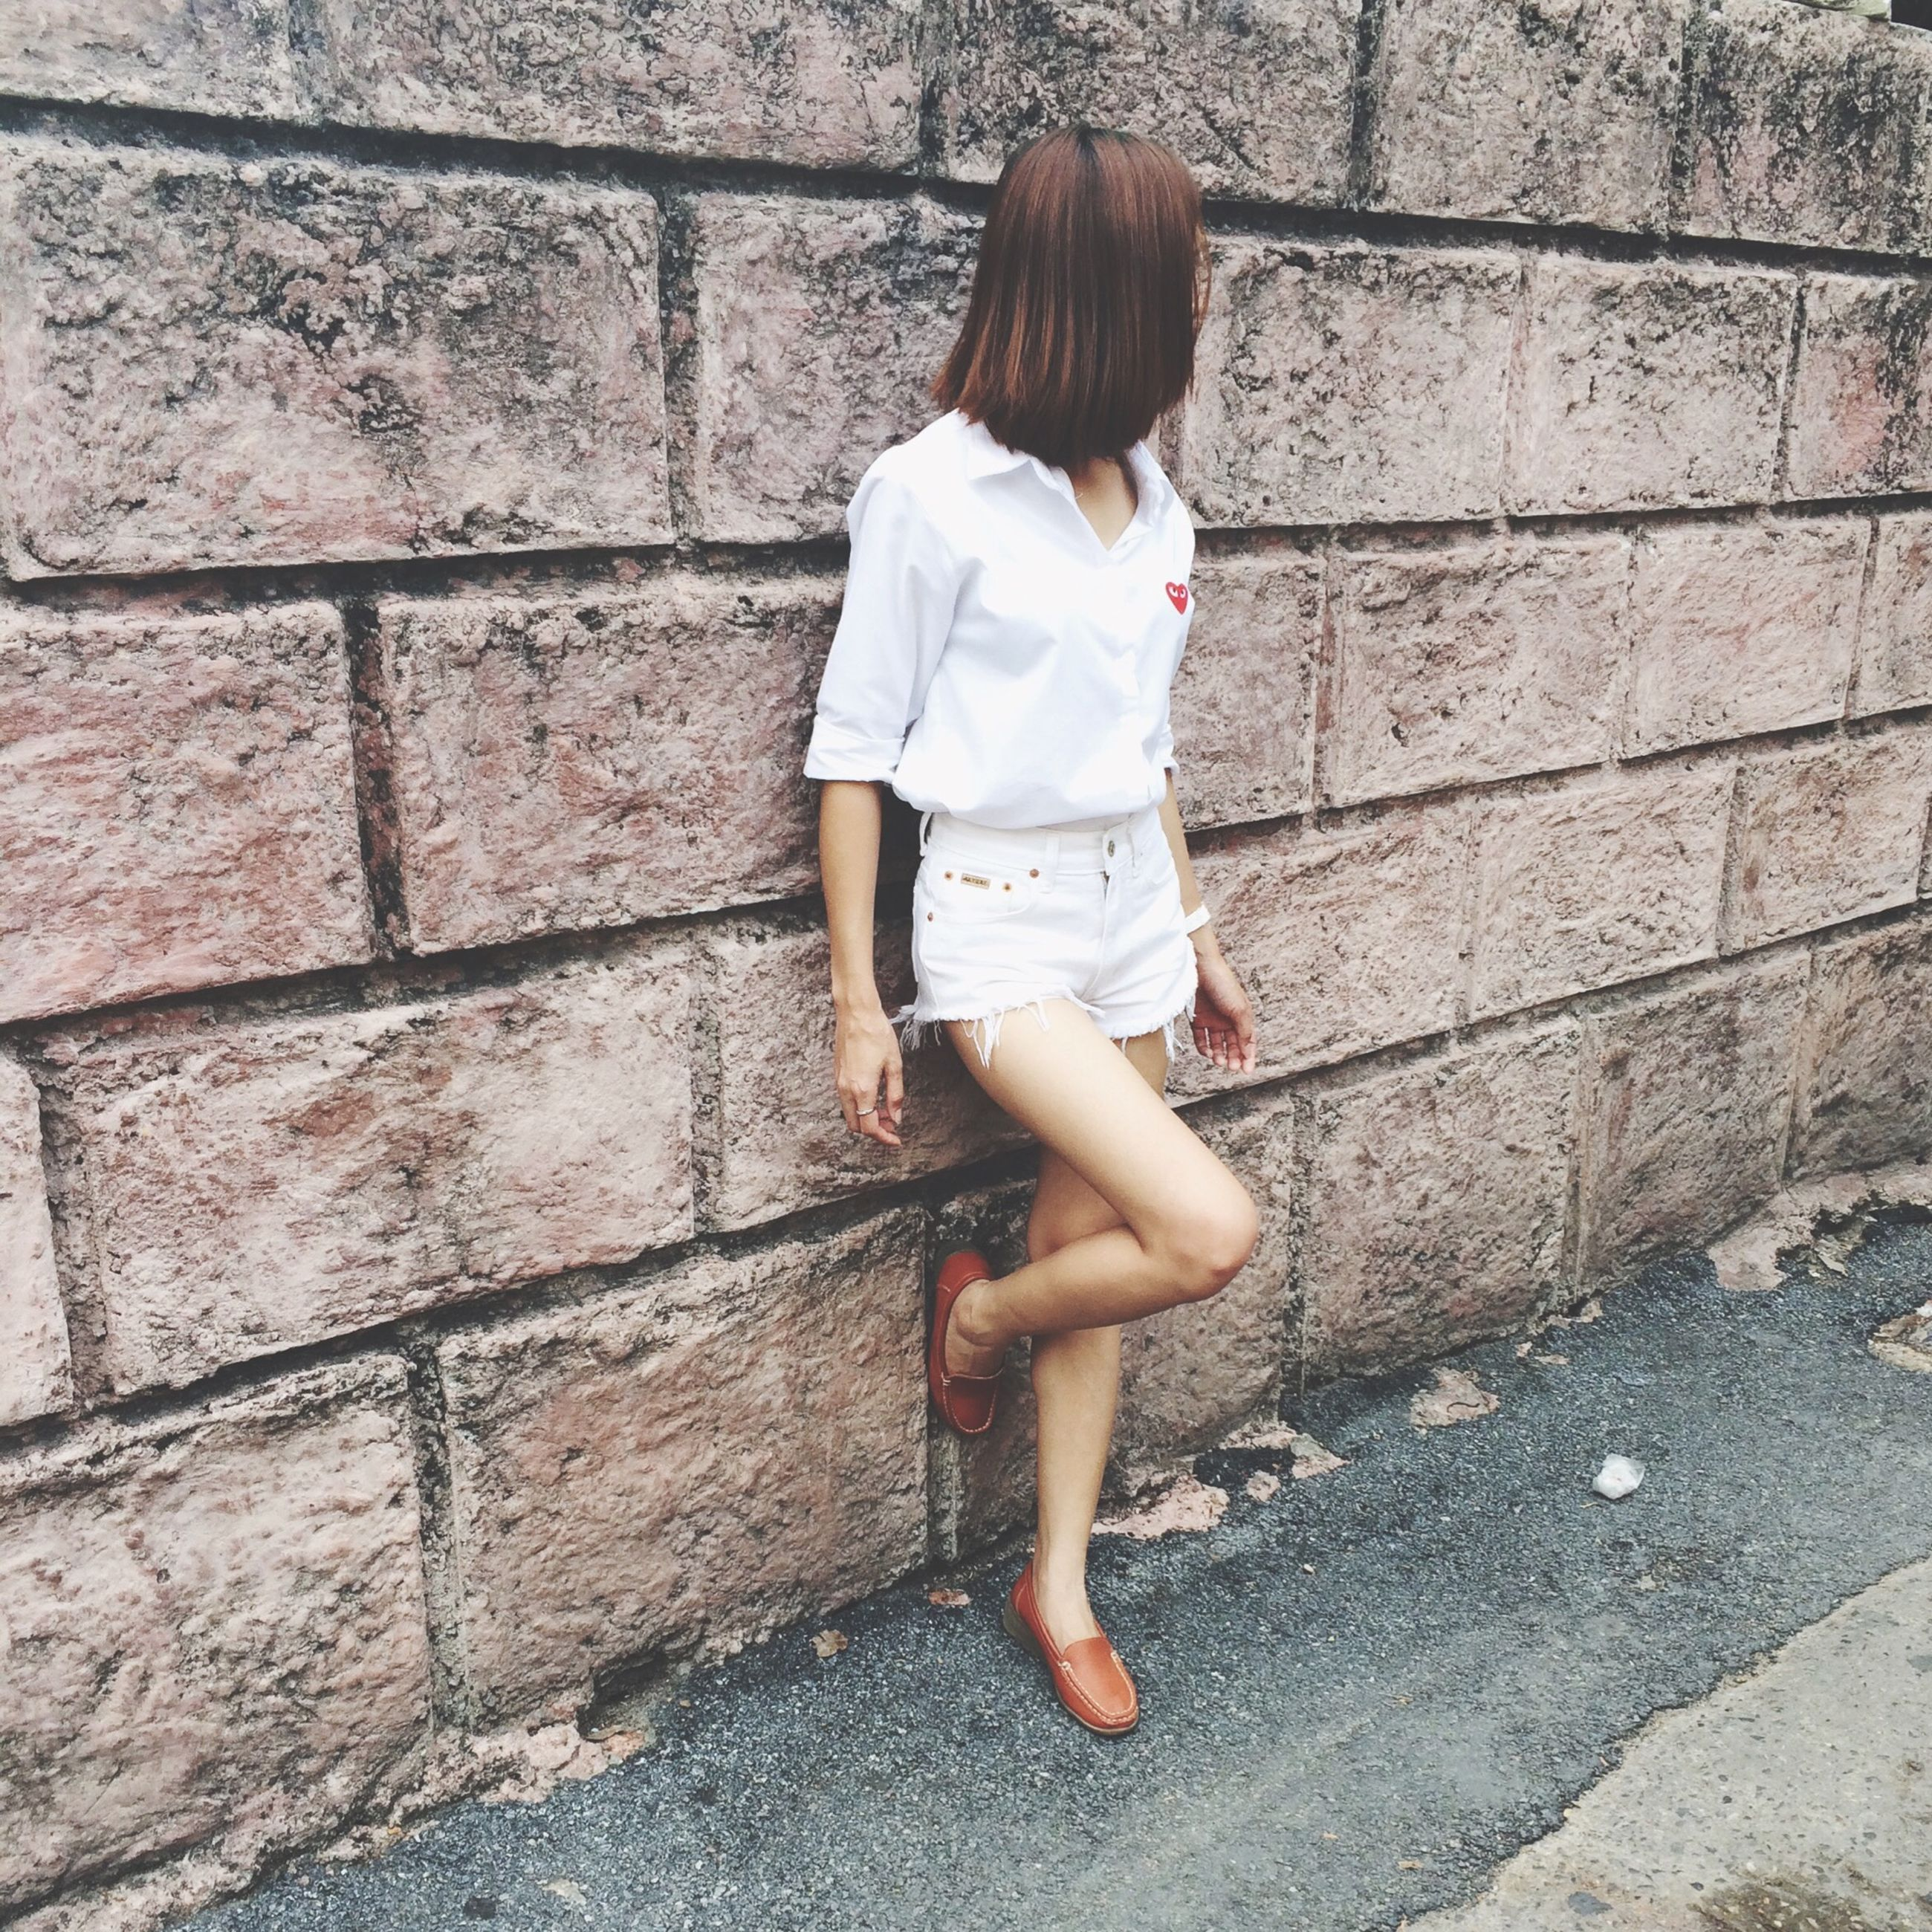 lifestyles, casual clothing, full length, standing, leisure activity, brick wall, wall - building feature, walking, rear view, childhood, day, person, front view, sidewalk, outdoors, side view, built structure